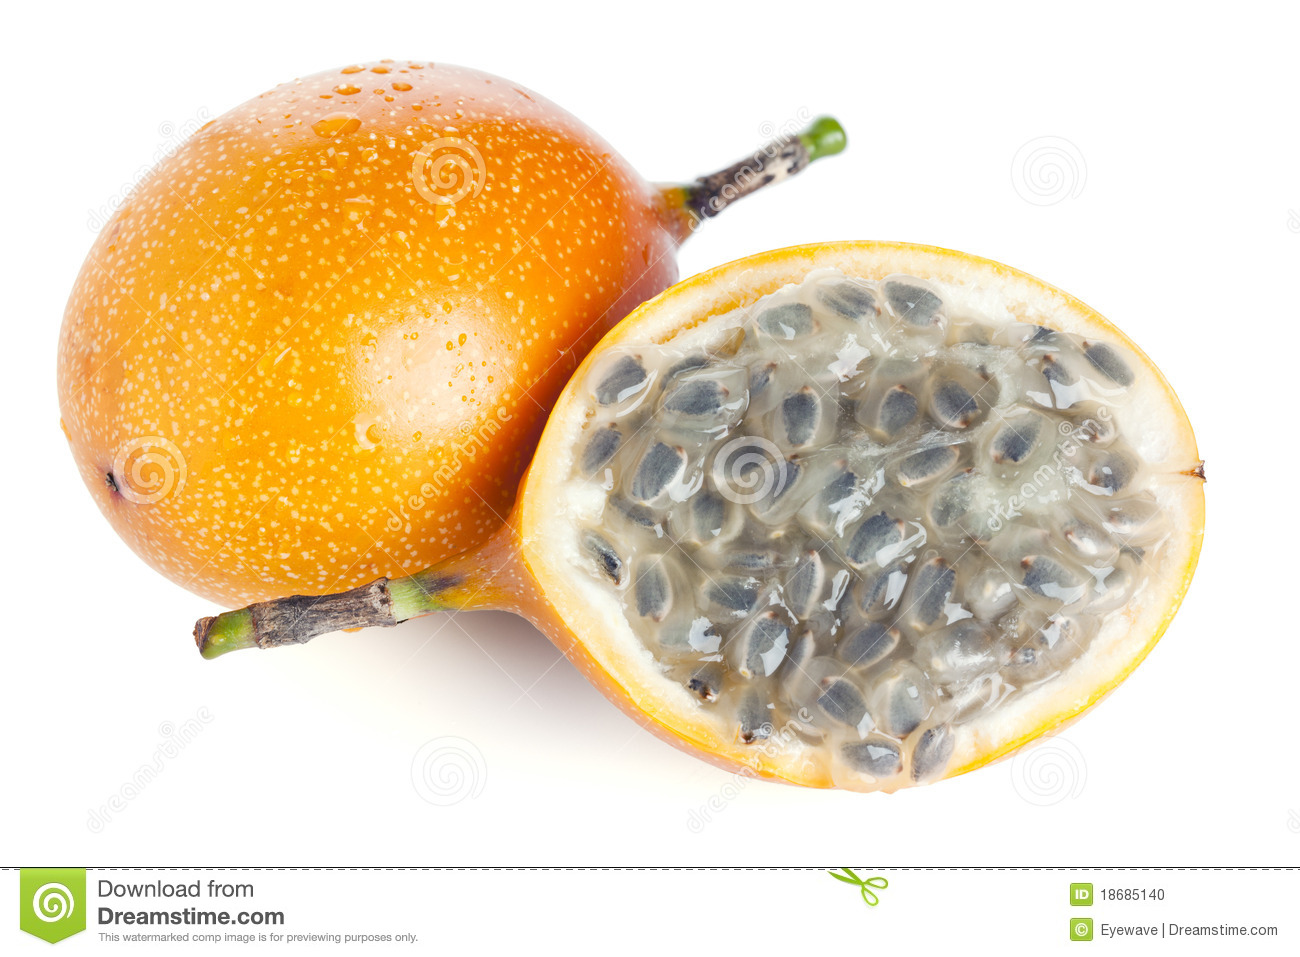 More similar stock images of ` Whole and half grenadilla passion fruit ...